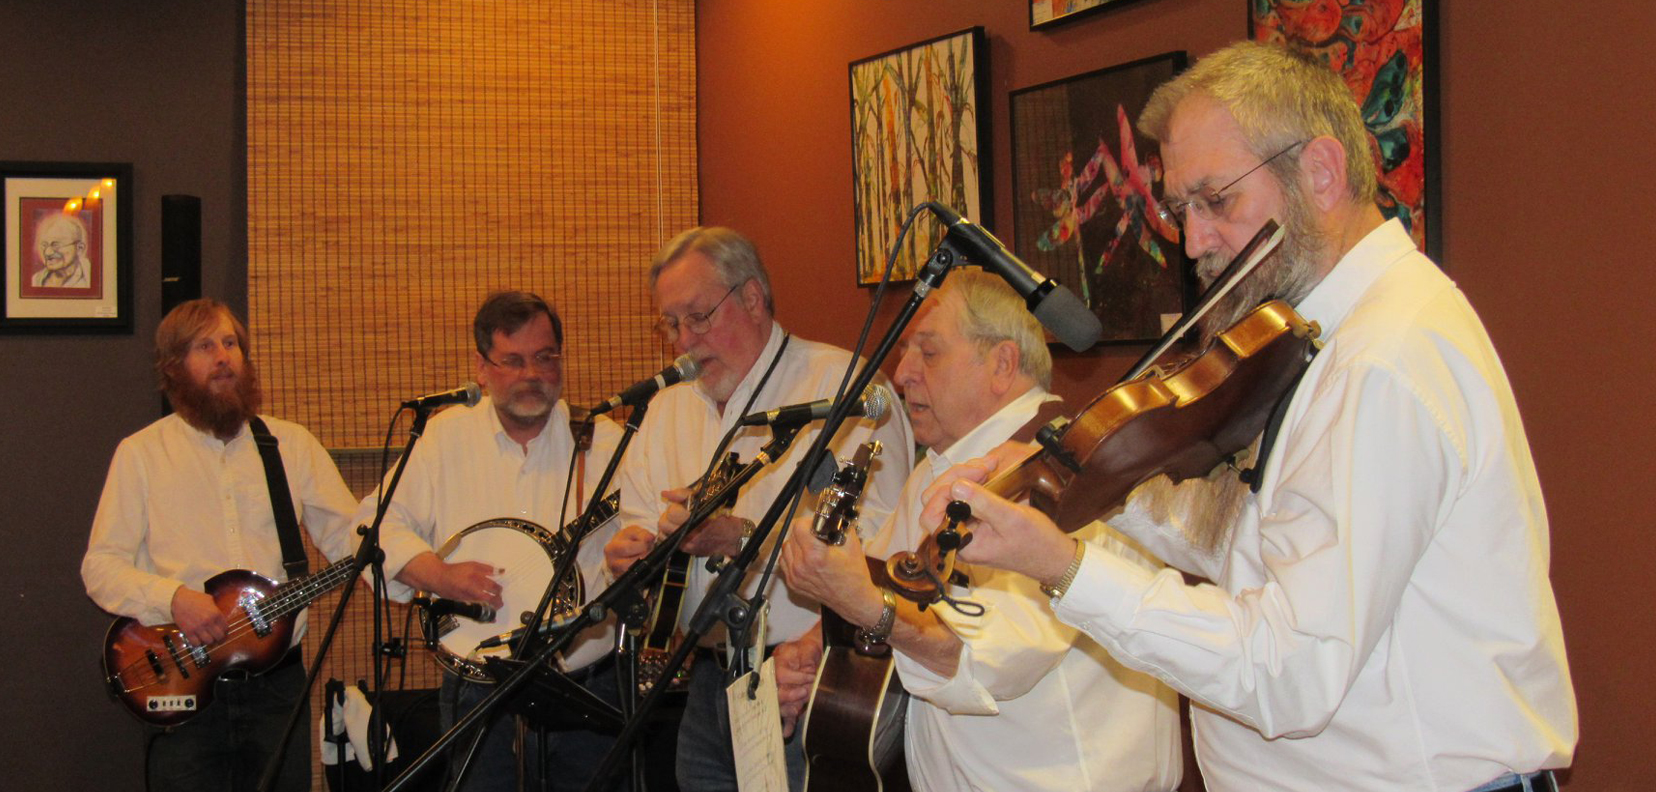 Steam Powered Bluegrass Band performing at the mics